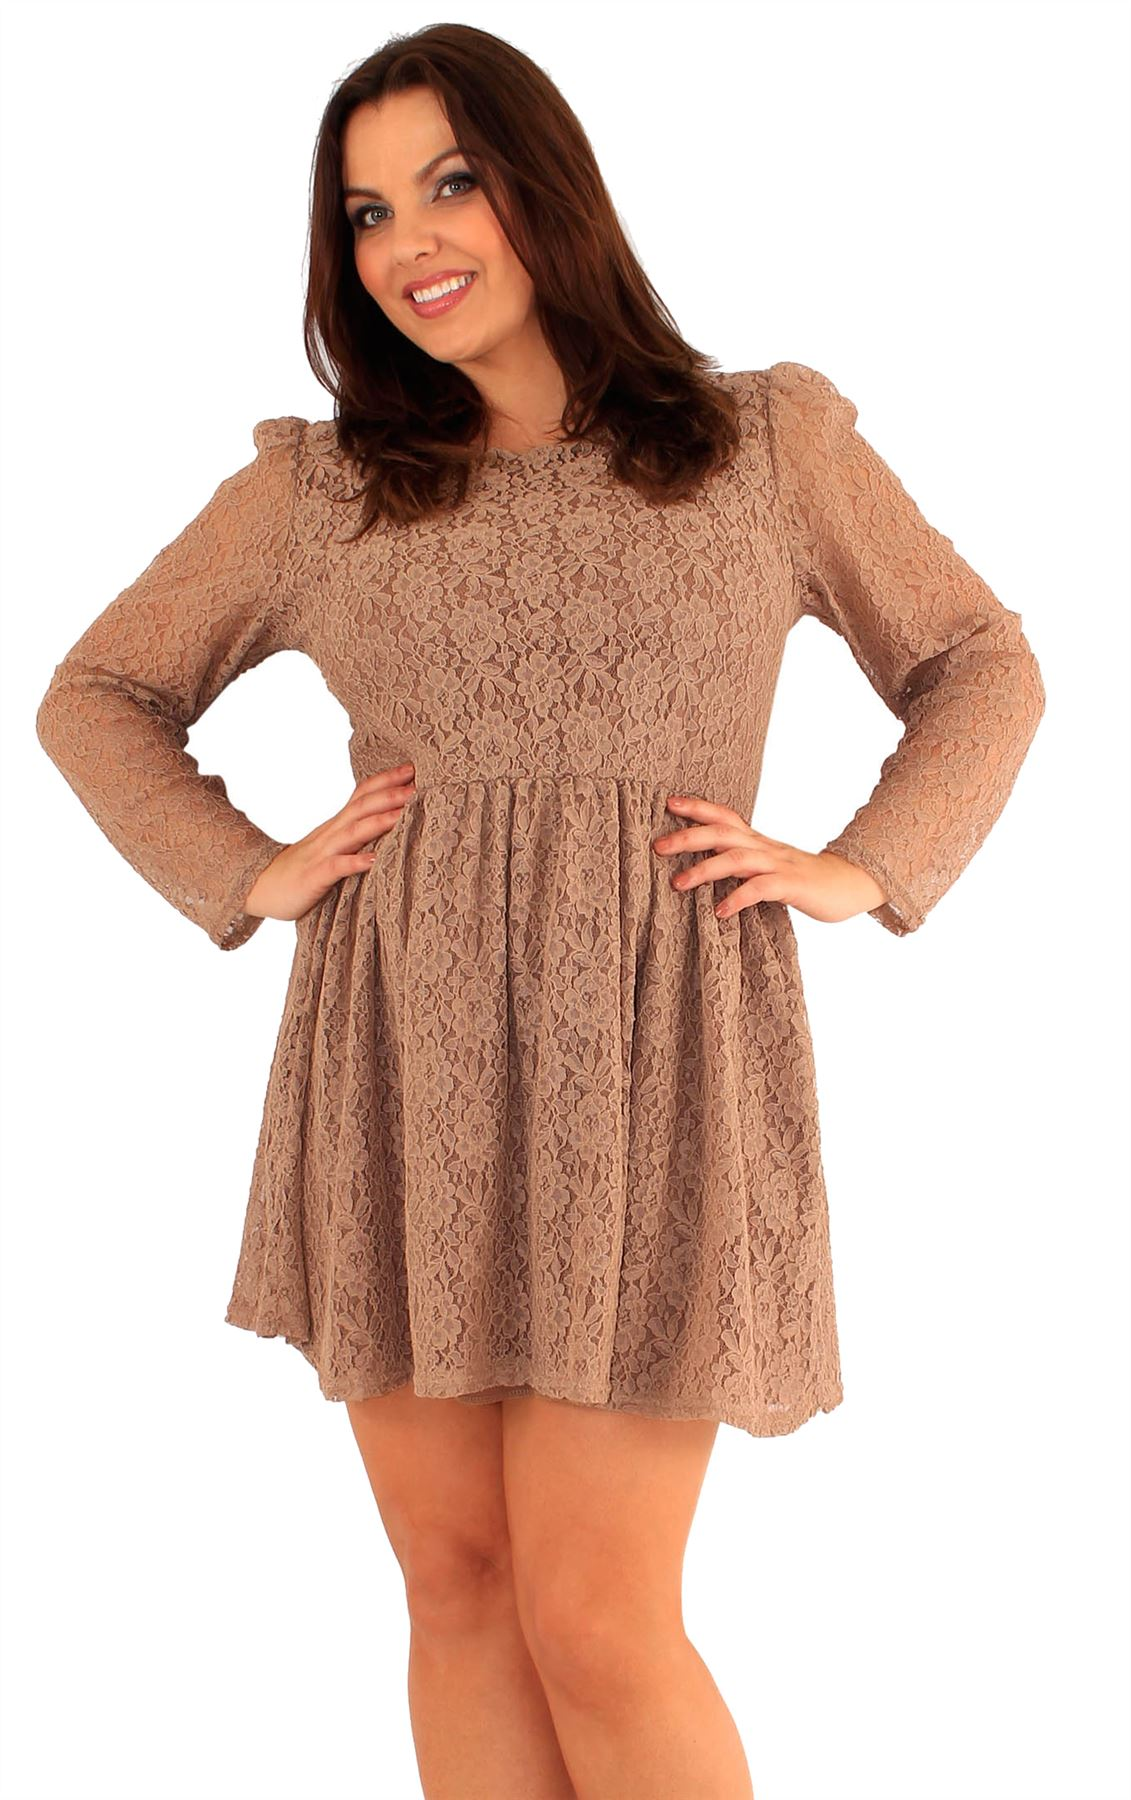 7b2929afb38f Details about New Ladies Plus Size Key Hole Back Lace Long Sleeve Evening  Skater Dress 18-24